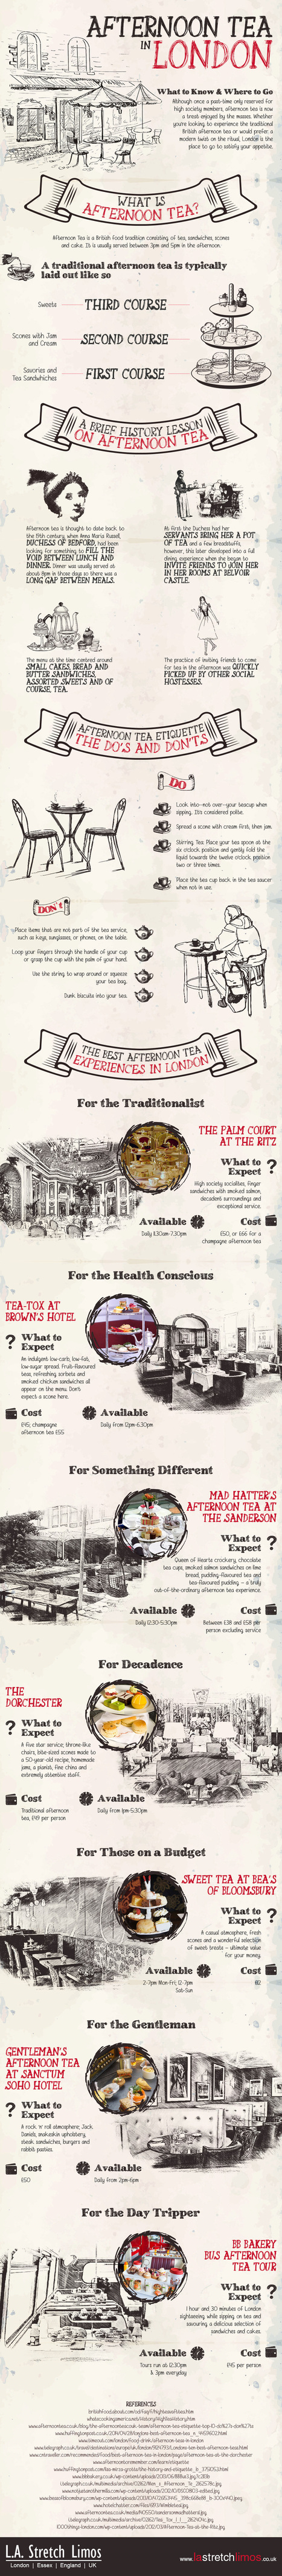 Afternoon Tea London UK - An Infographic | Travel Tips, Sight Seeing,  Hotels & Transportation | Scoop.it